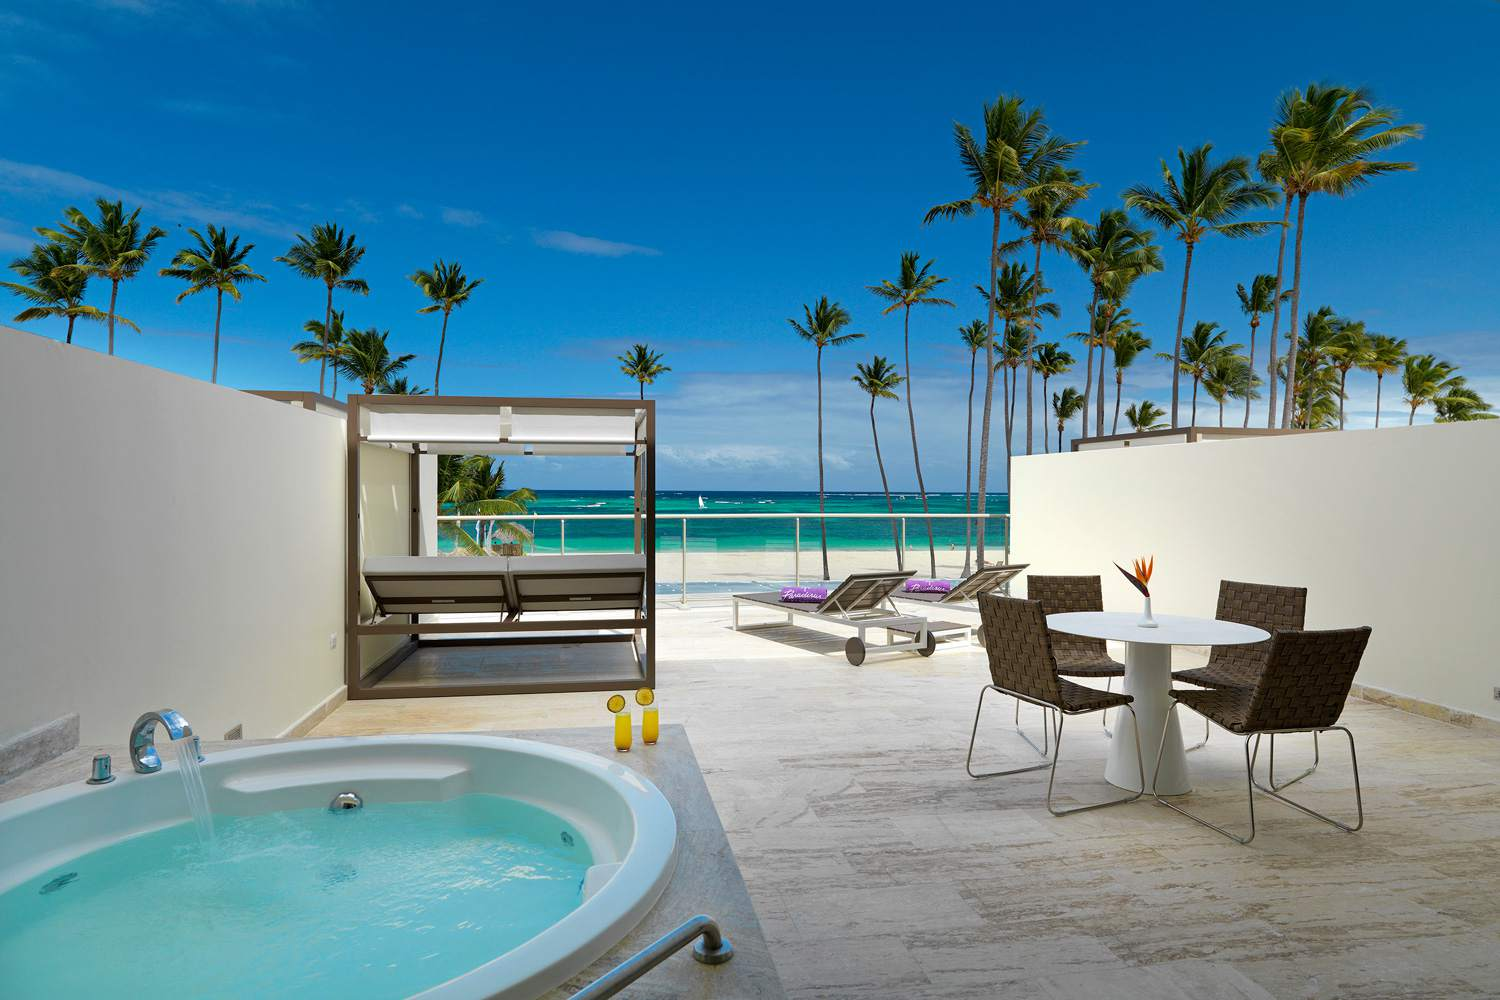 The Reserve at Paradisus